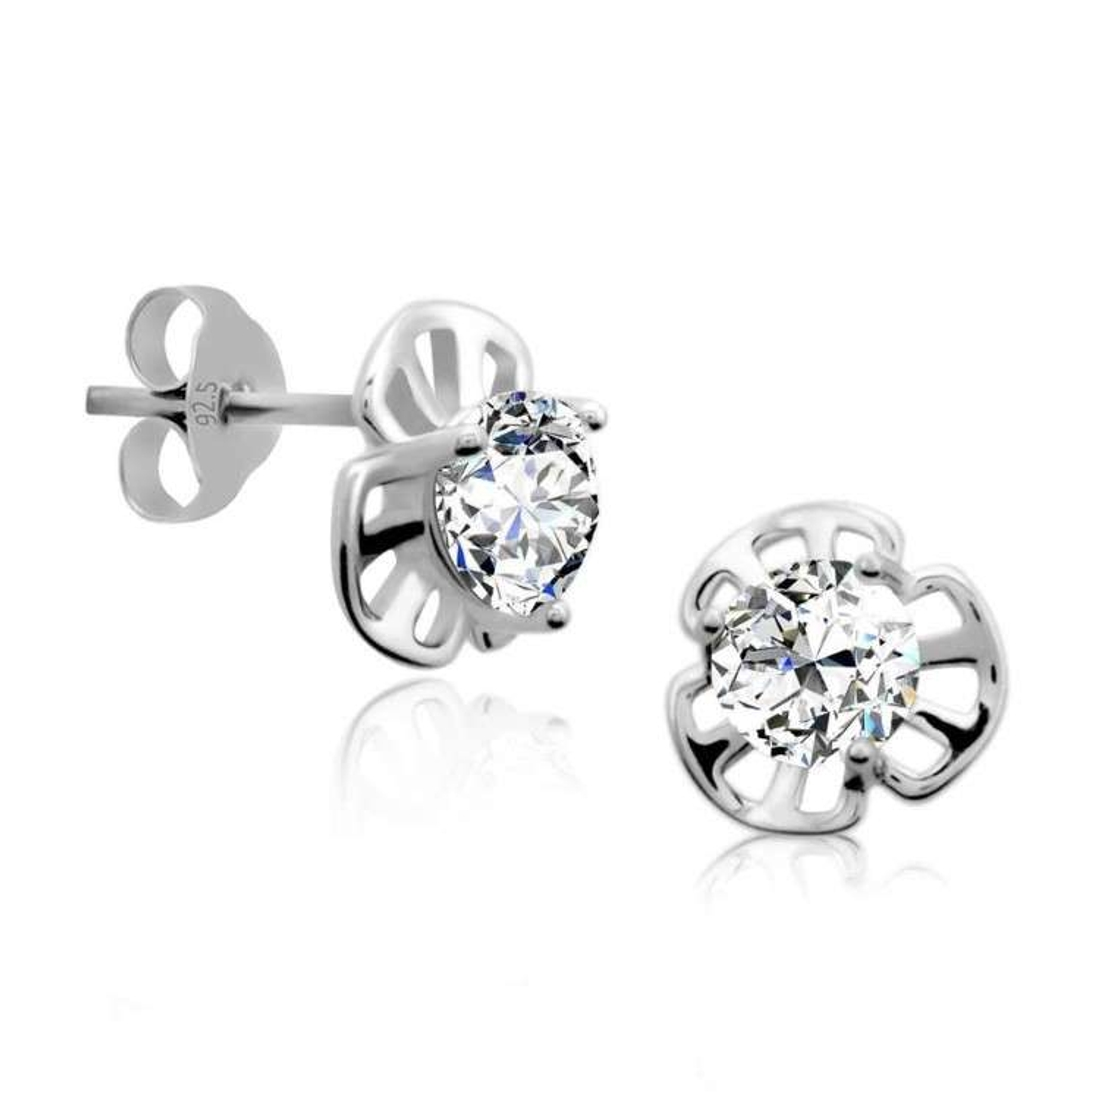 Silver Shine 92.5 Sterling Silver Fancy Small Solitaire Earring For Women & Girls